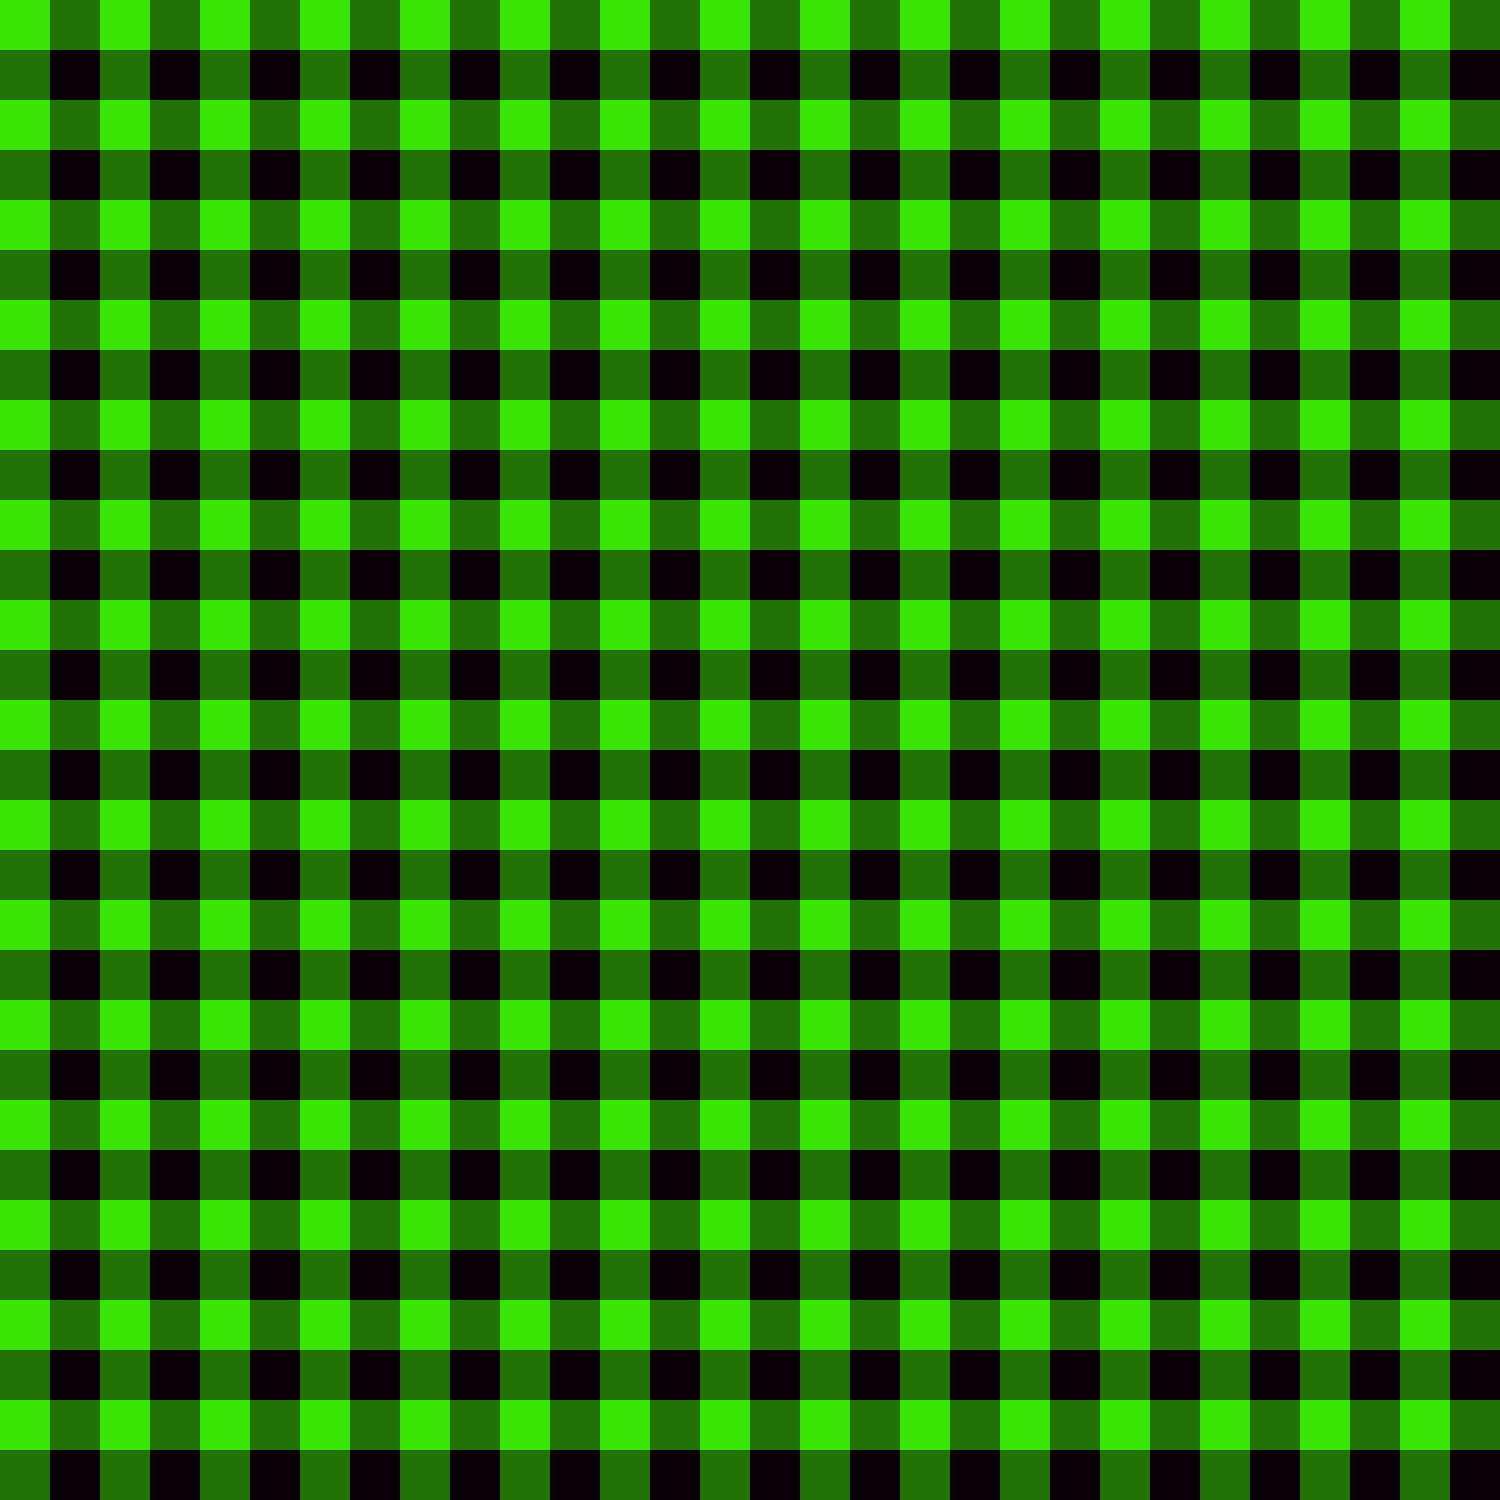 Free clipart red and green ginham plaid freeuse library Free Clipart N Images: More Free Christmas Gingham Backgrounds freeuse library